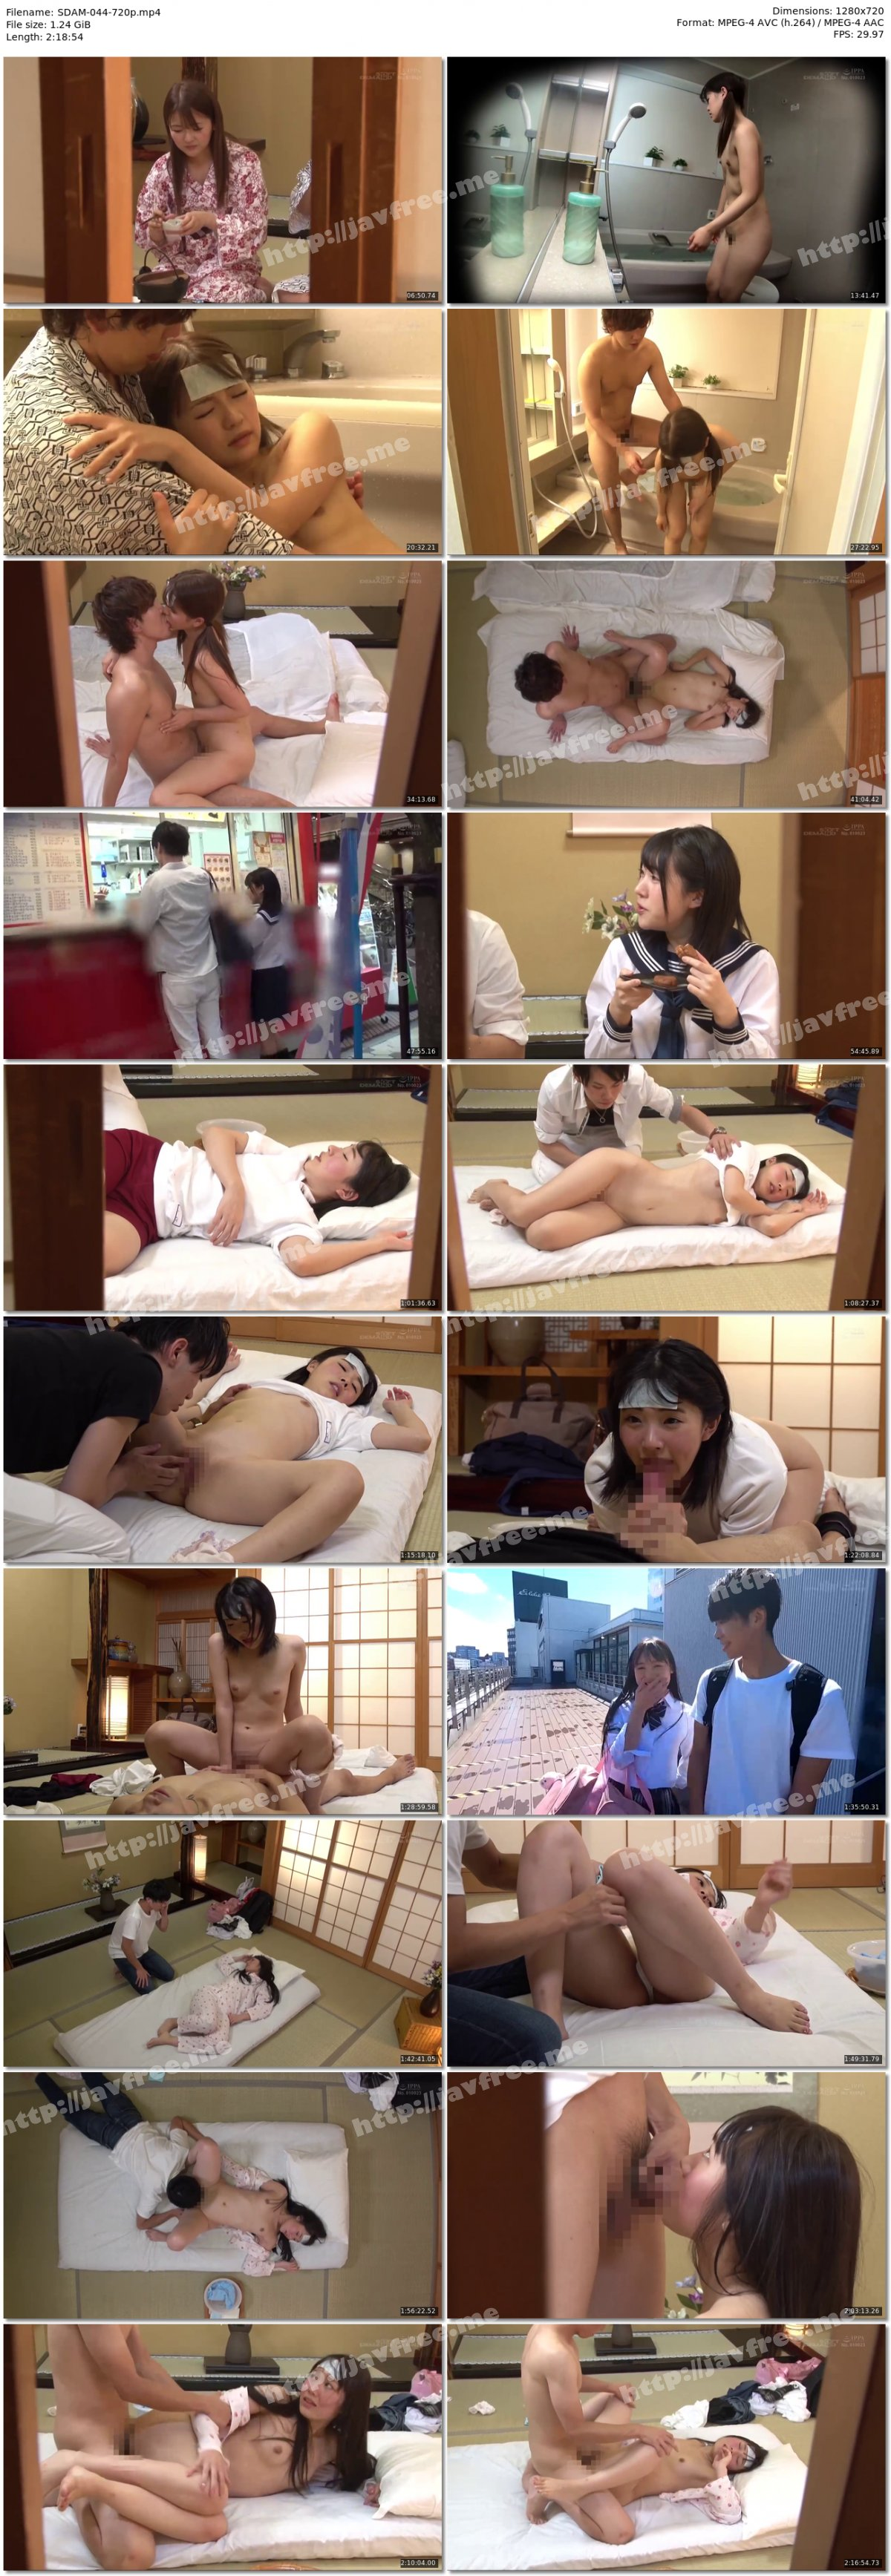 [HD][MSFH-010] 前田桃杏 AV Debut - image SDAM-044-720p on https://javfree.me